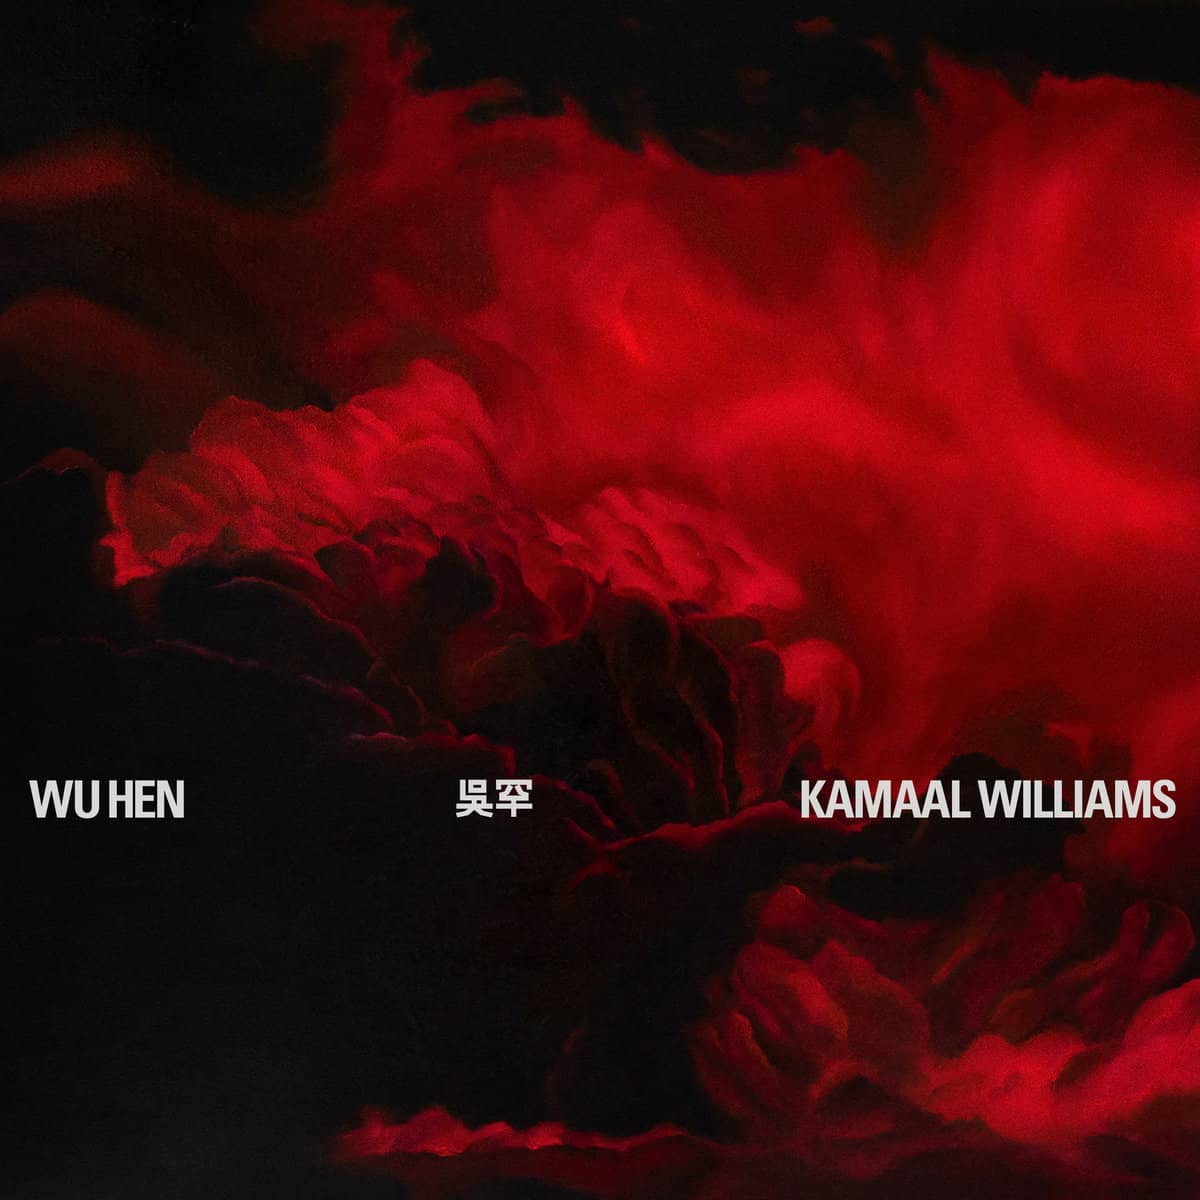 Artwork de l'album Wu Hen, de Kamaal Williams